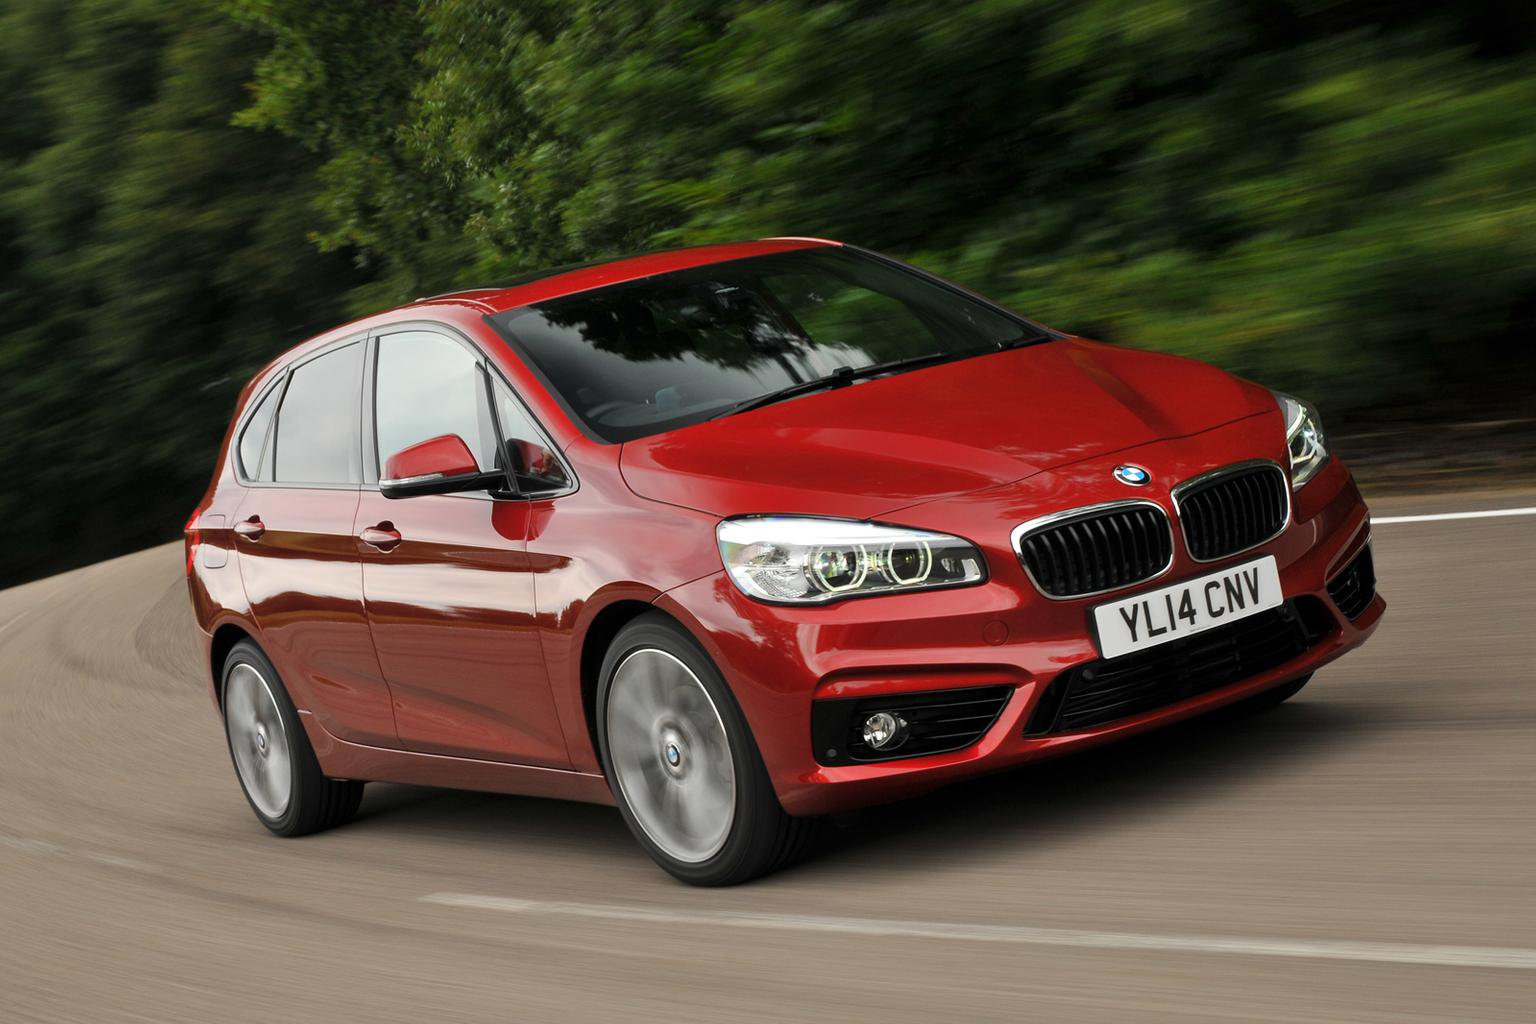 Deal of the Day: BMW 2 Series Active Tourer